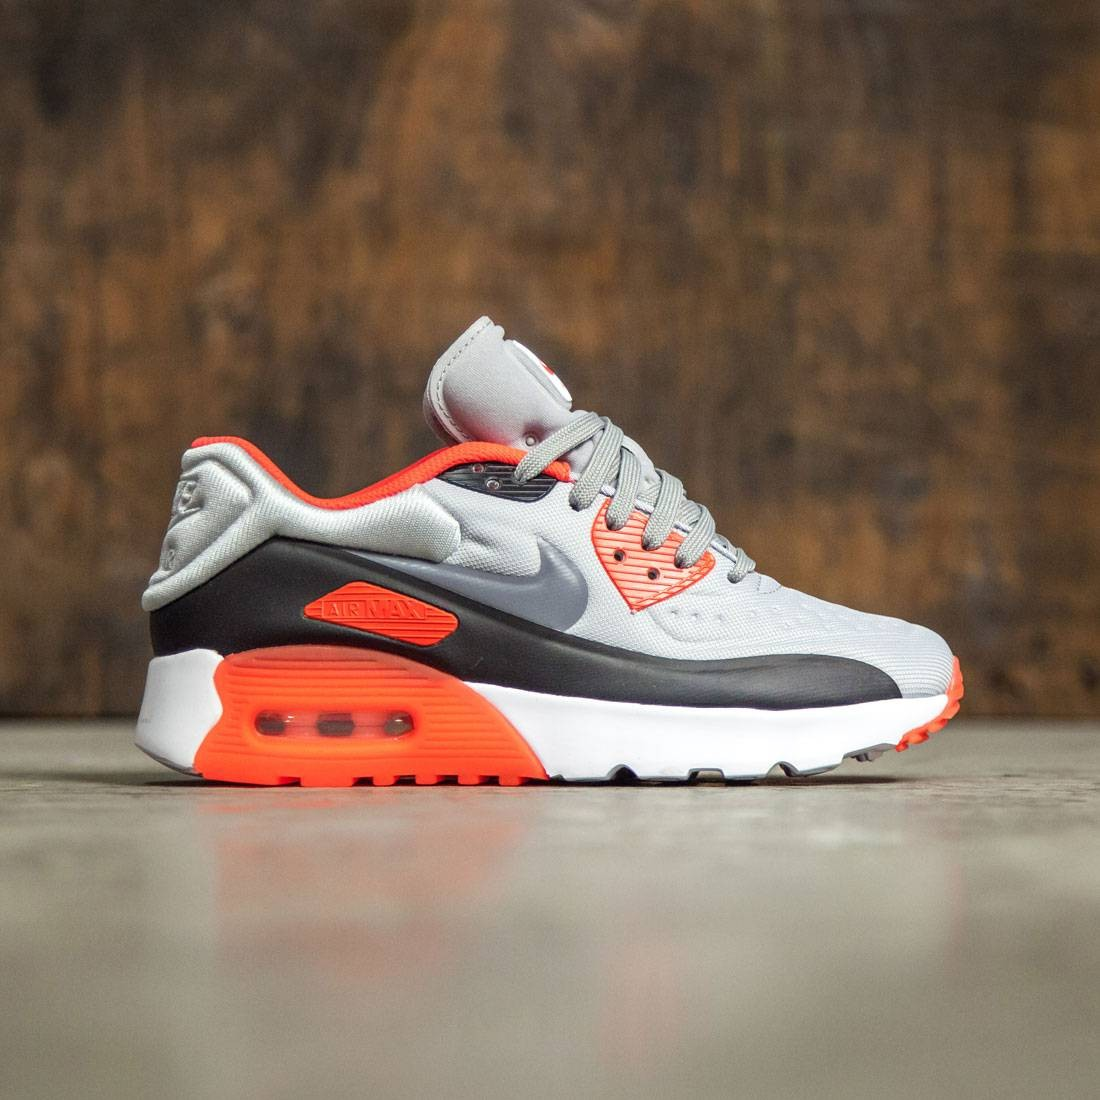 newest db4db 570da Nike Big Kids Nike Air Max 90 Ultra Se (Gs) (wolf grey   cool grey-bright  crimson-black)